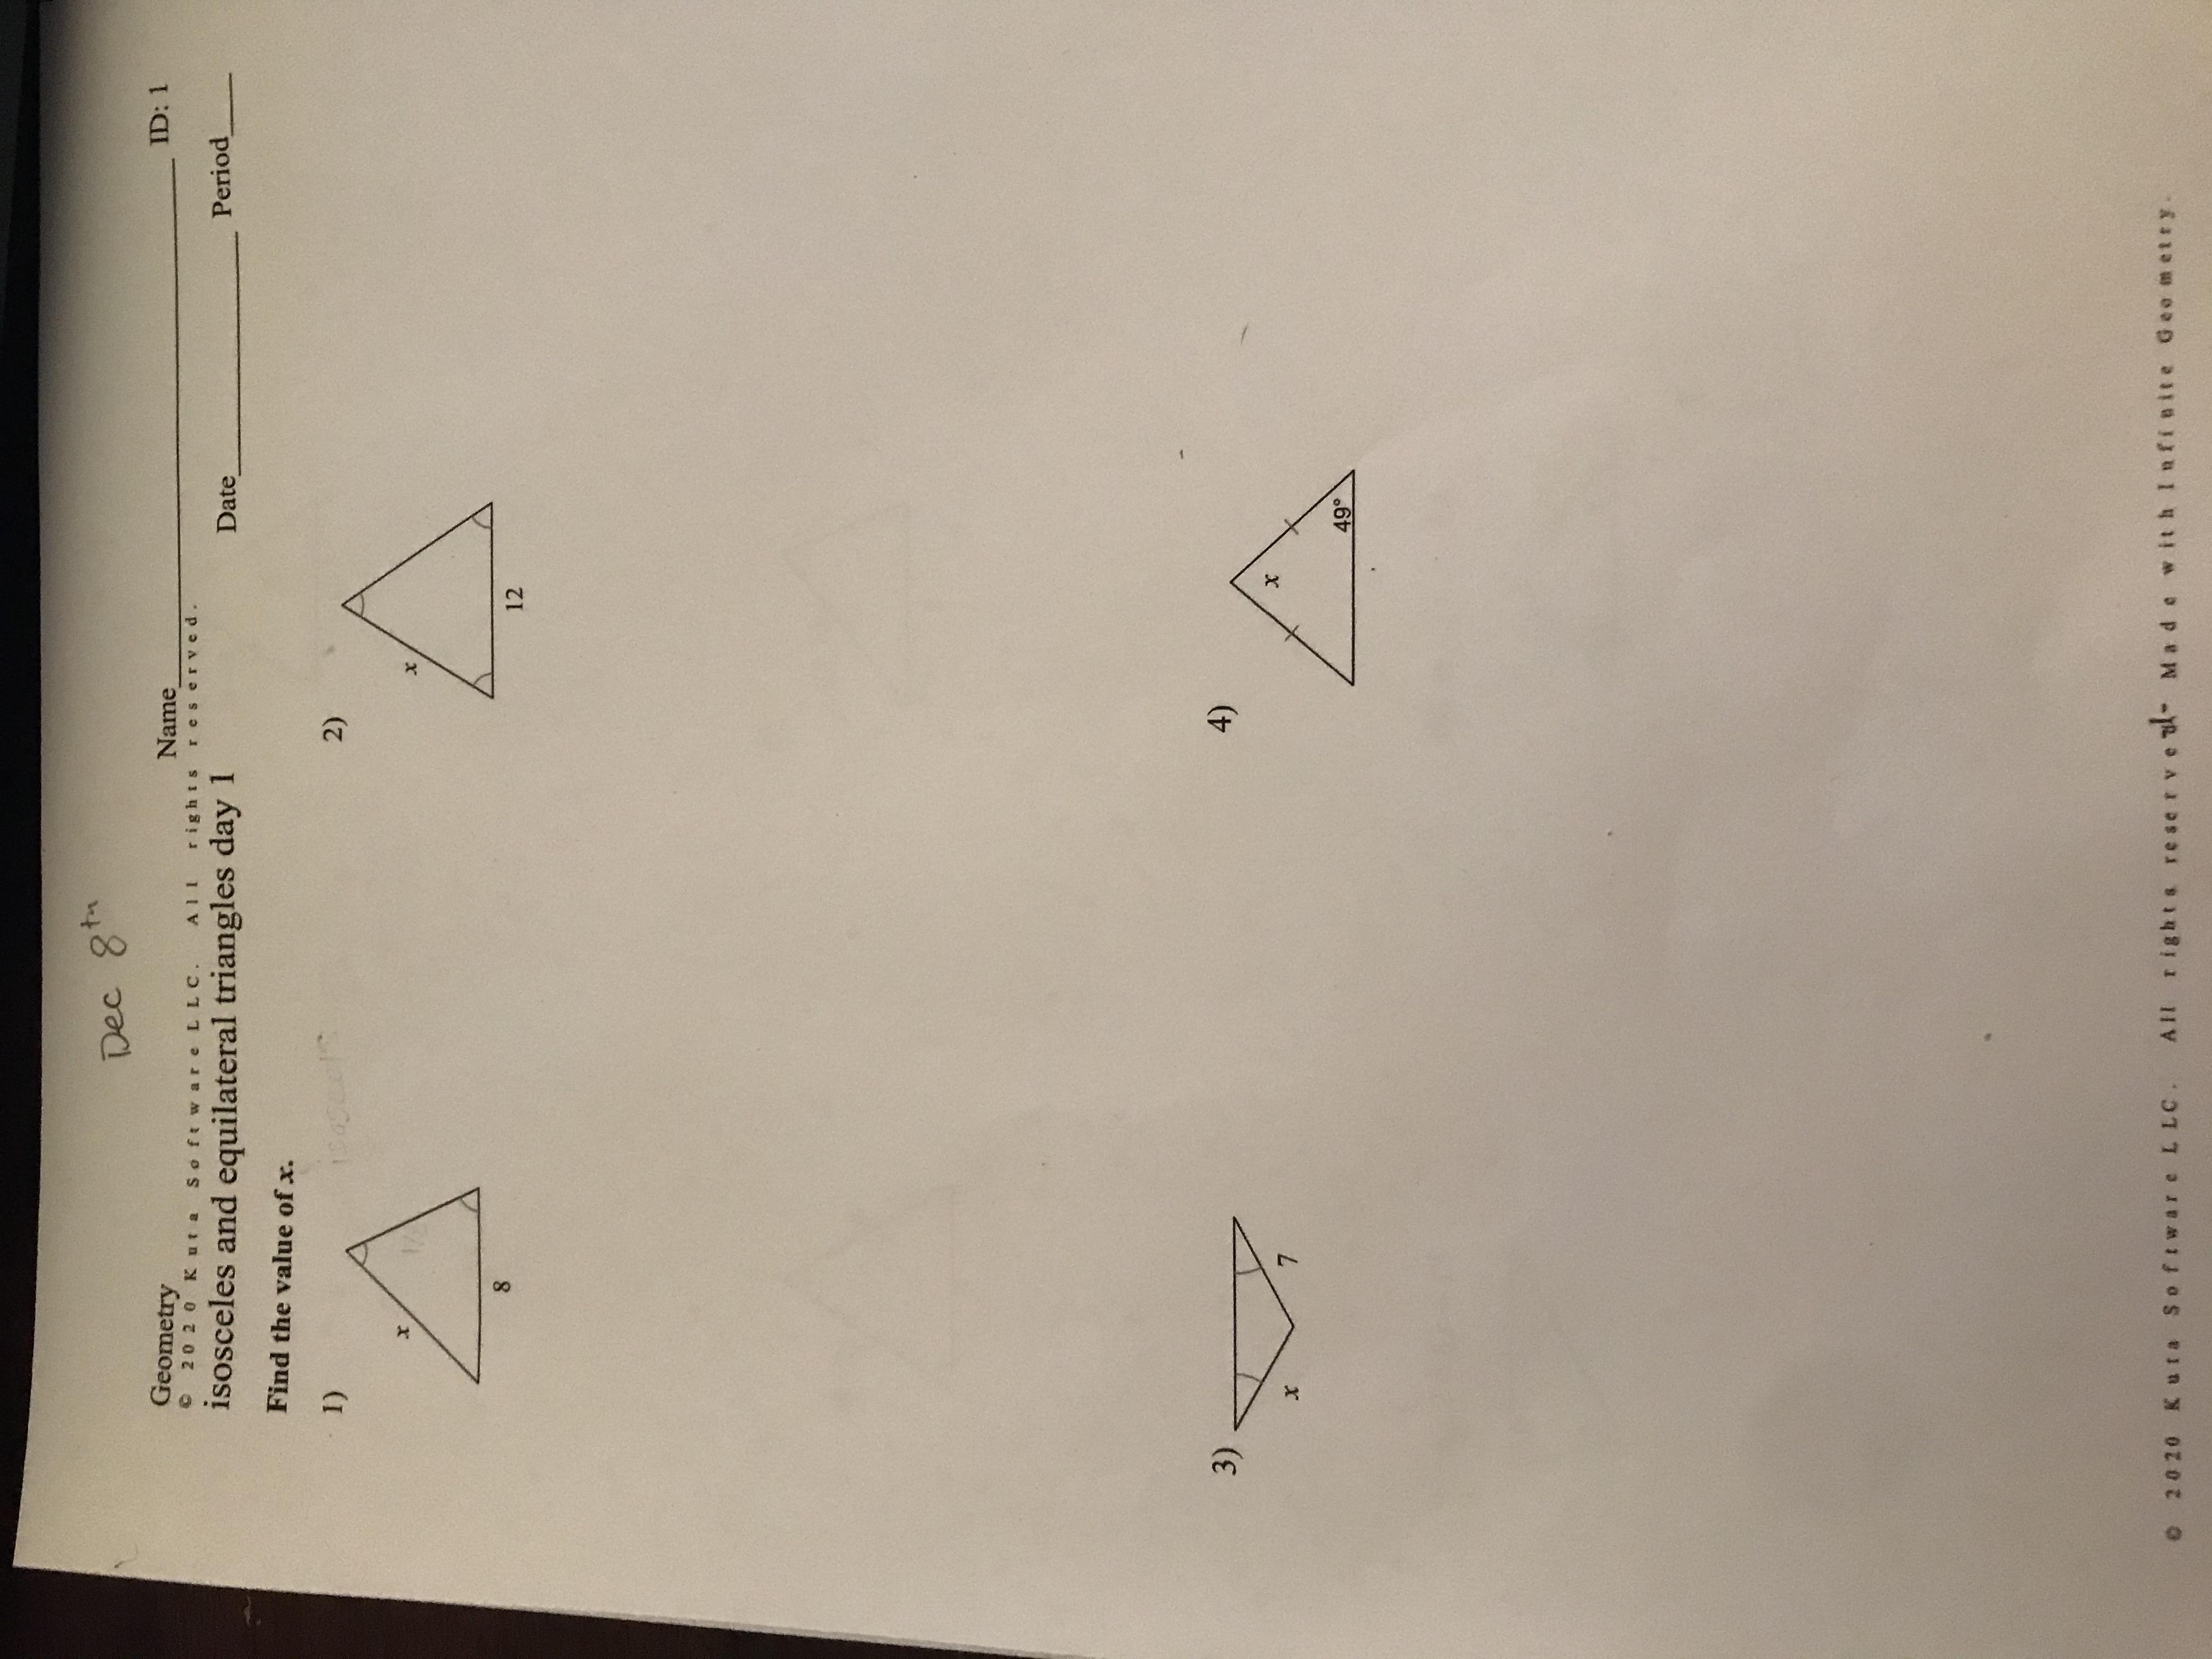 I Need Help With This Worksheet Geometry Isosceles And